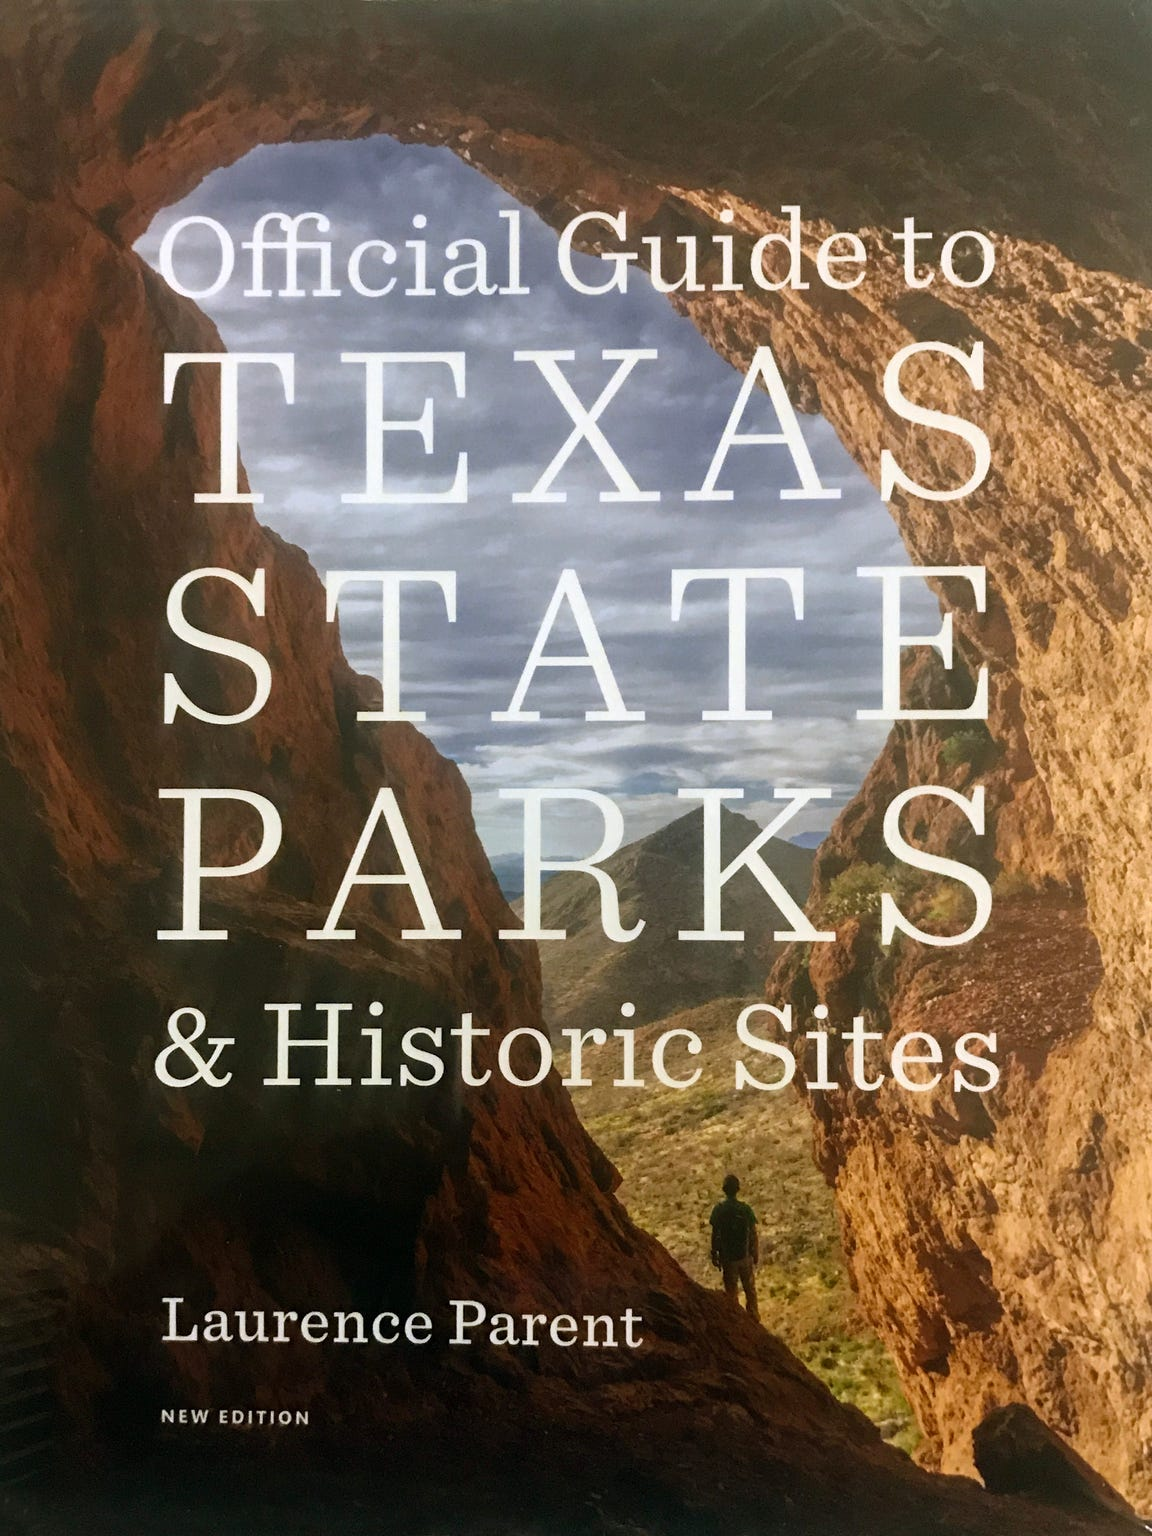 Official Guide to Texas State Parks & Historic Sites